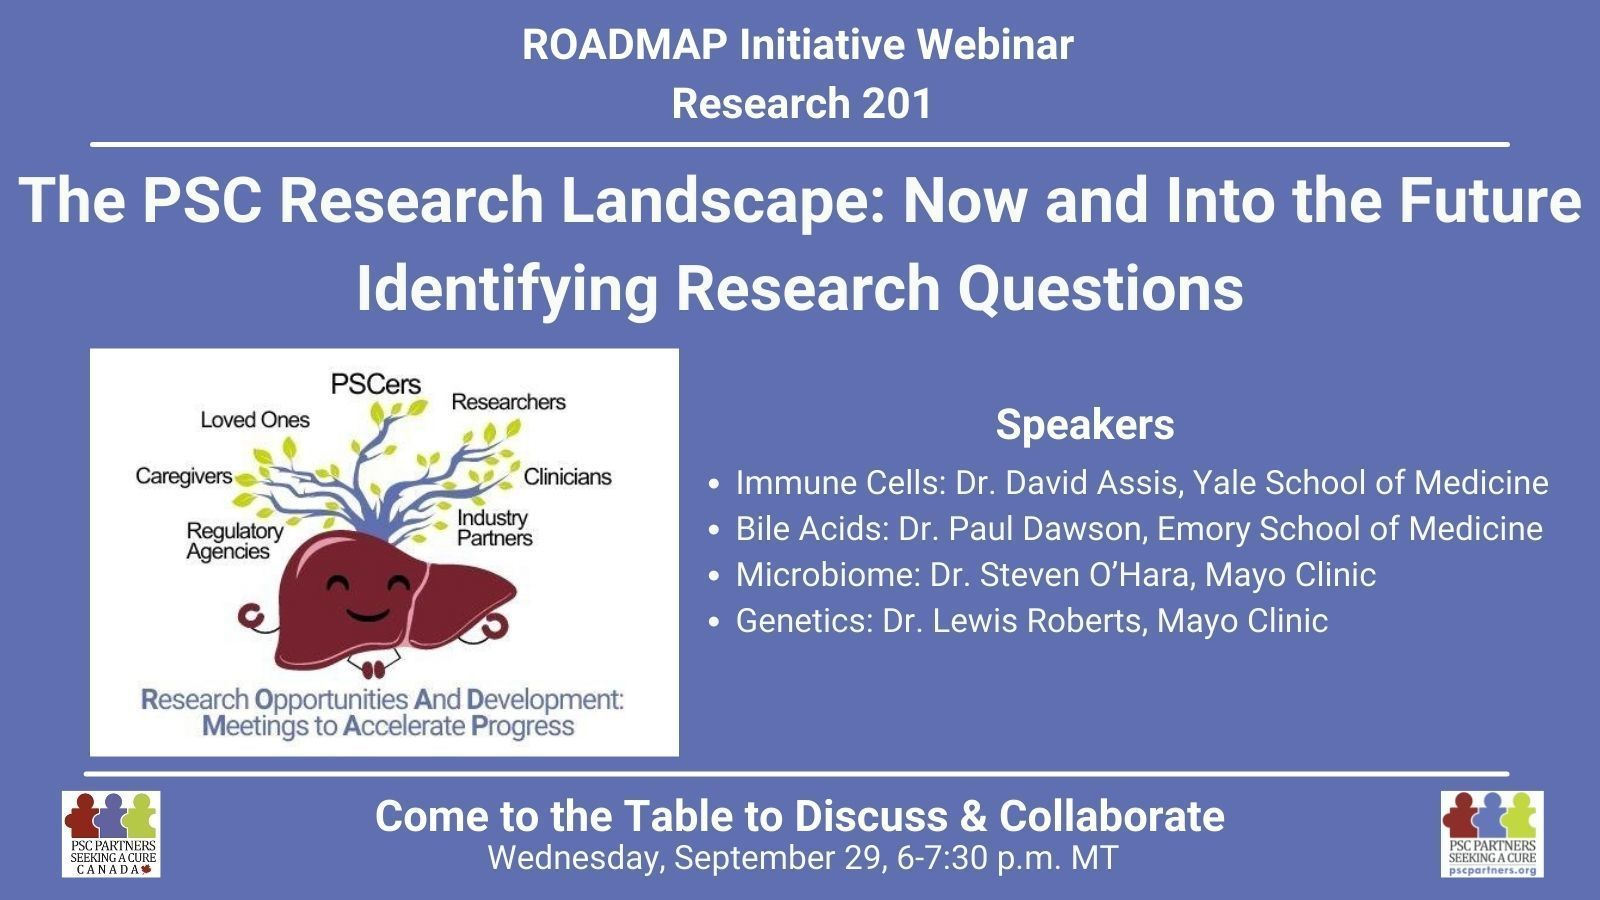 ROADMAP Research 201 - The PSC Research Landscape: Now and Into the Future -- Identifying Research Questions